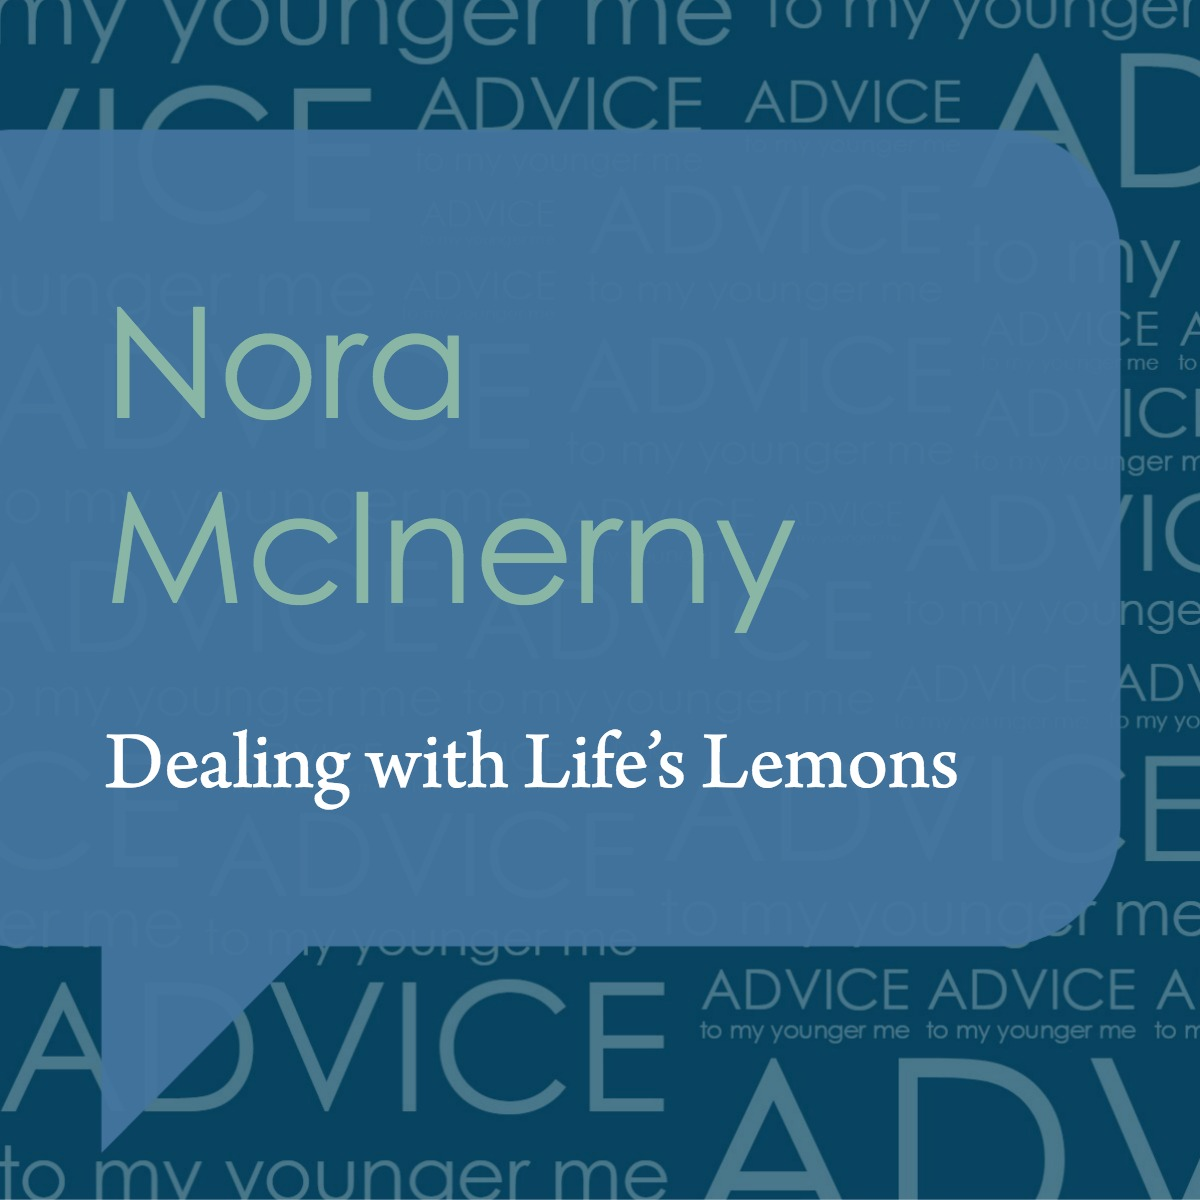 Dealing with Life's Lemons with Nora McInerny